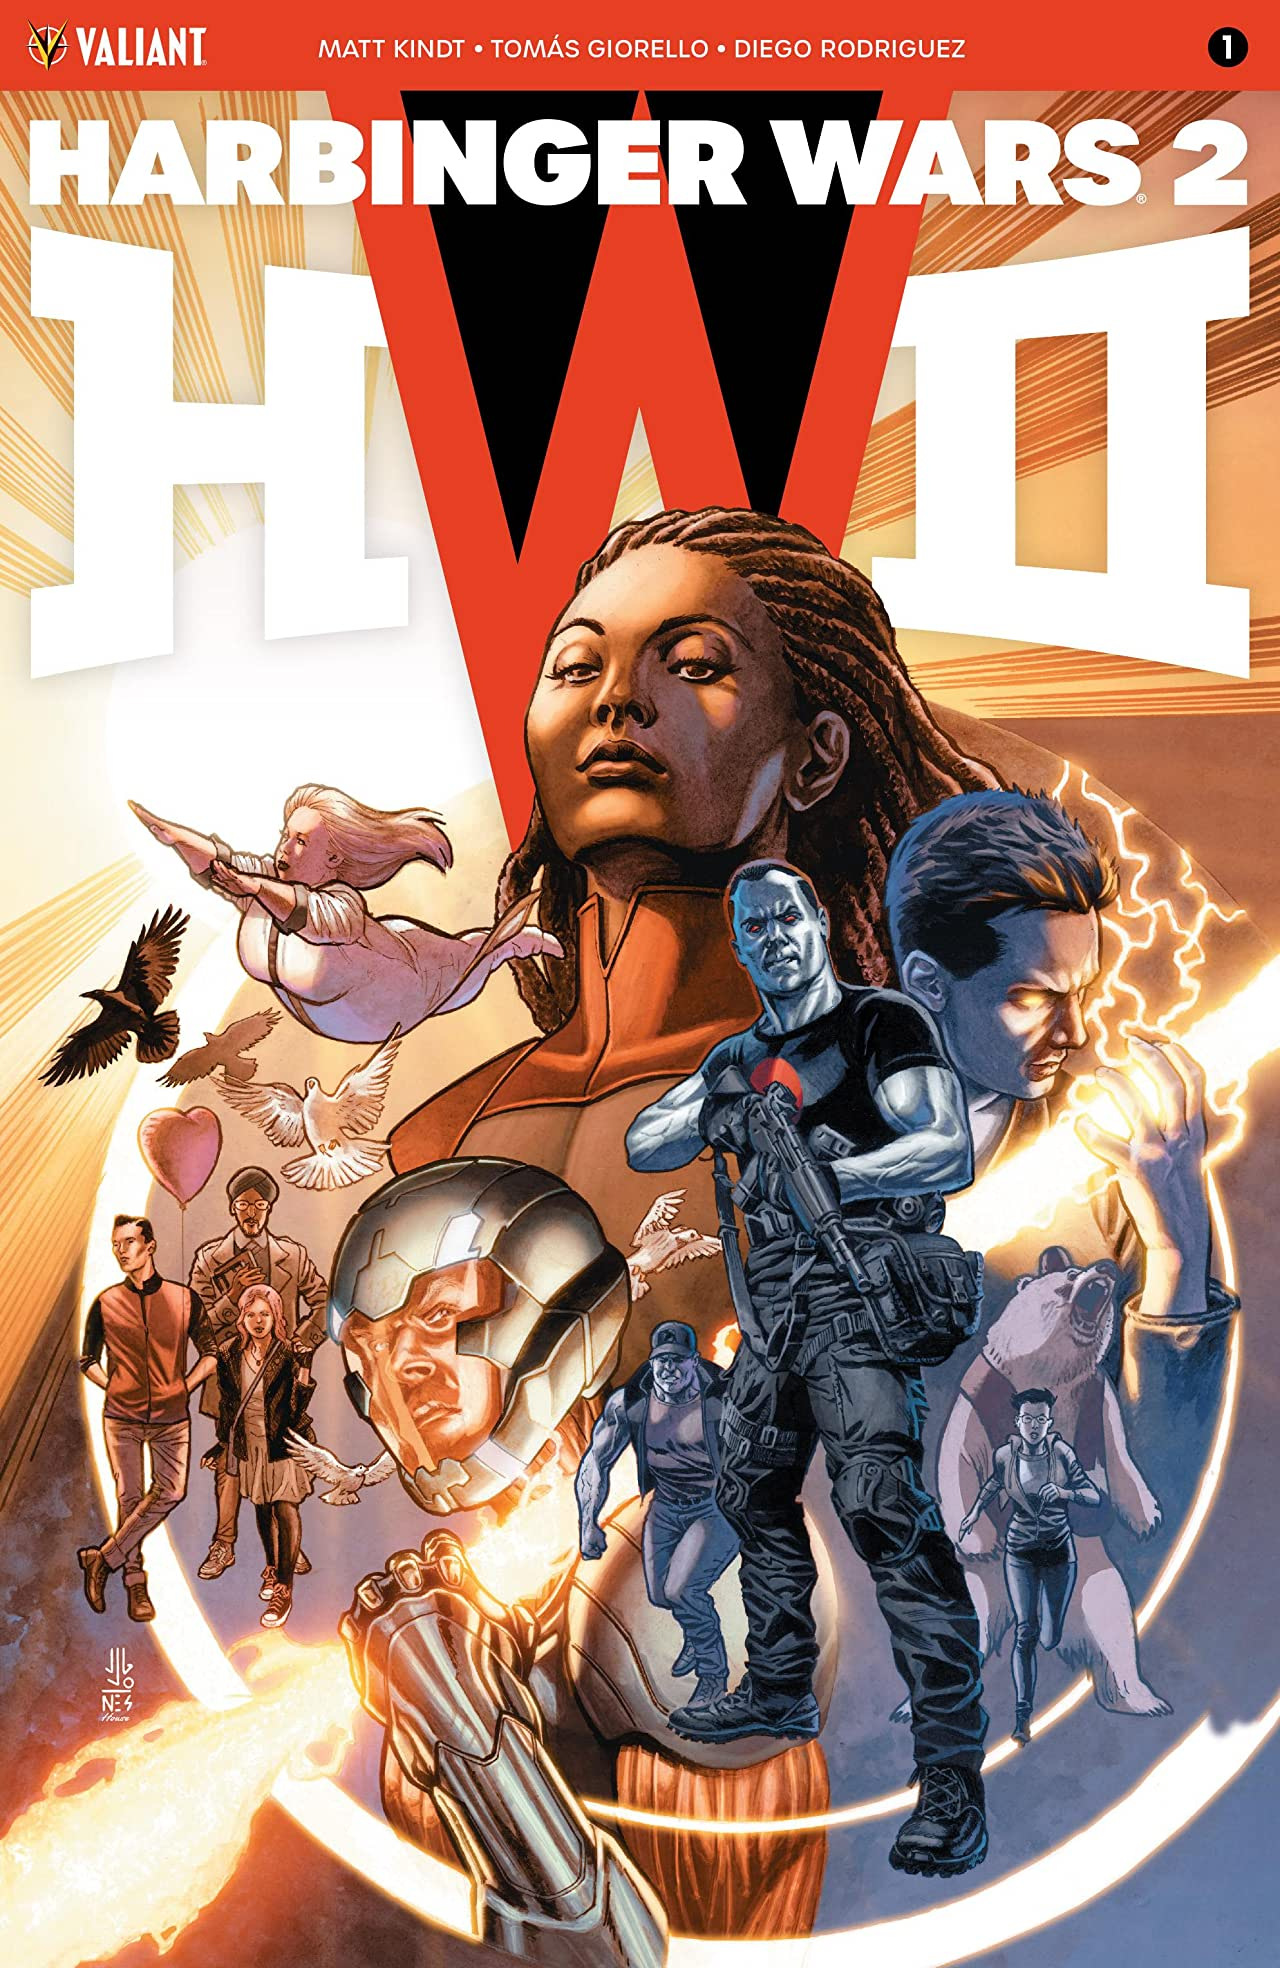 Harbinger Wars 2 No.1